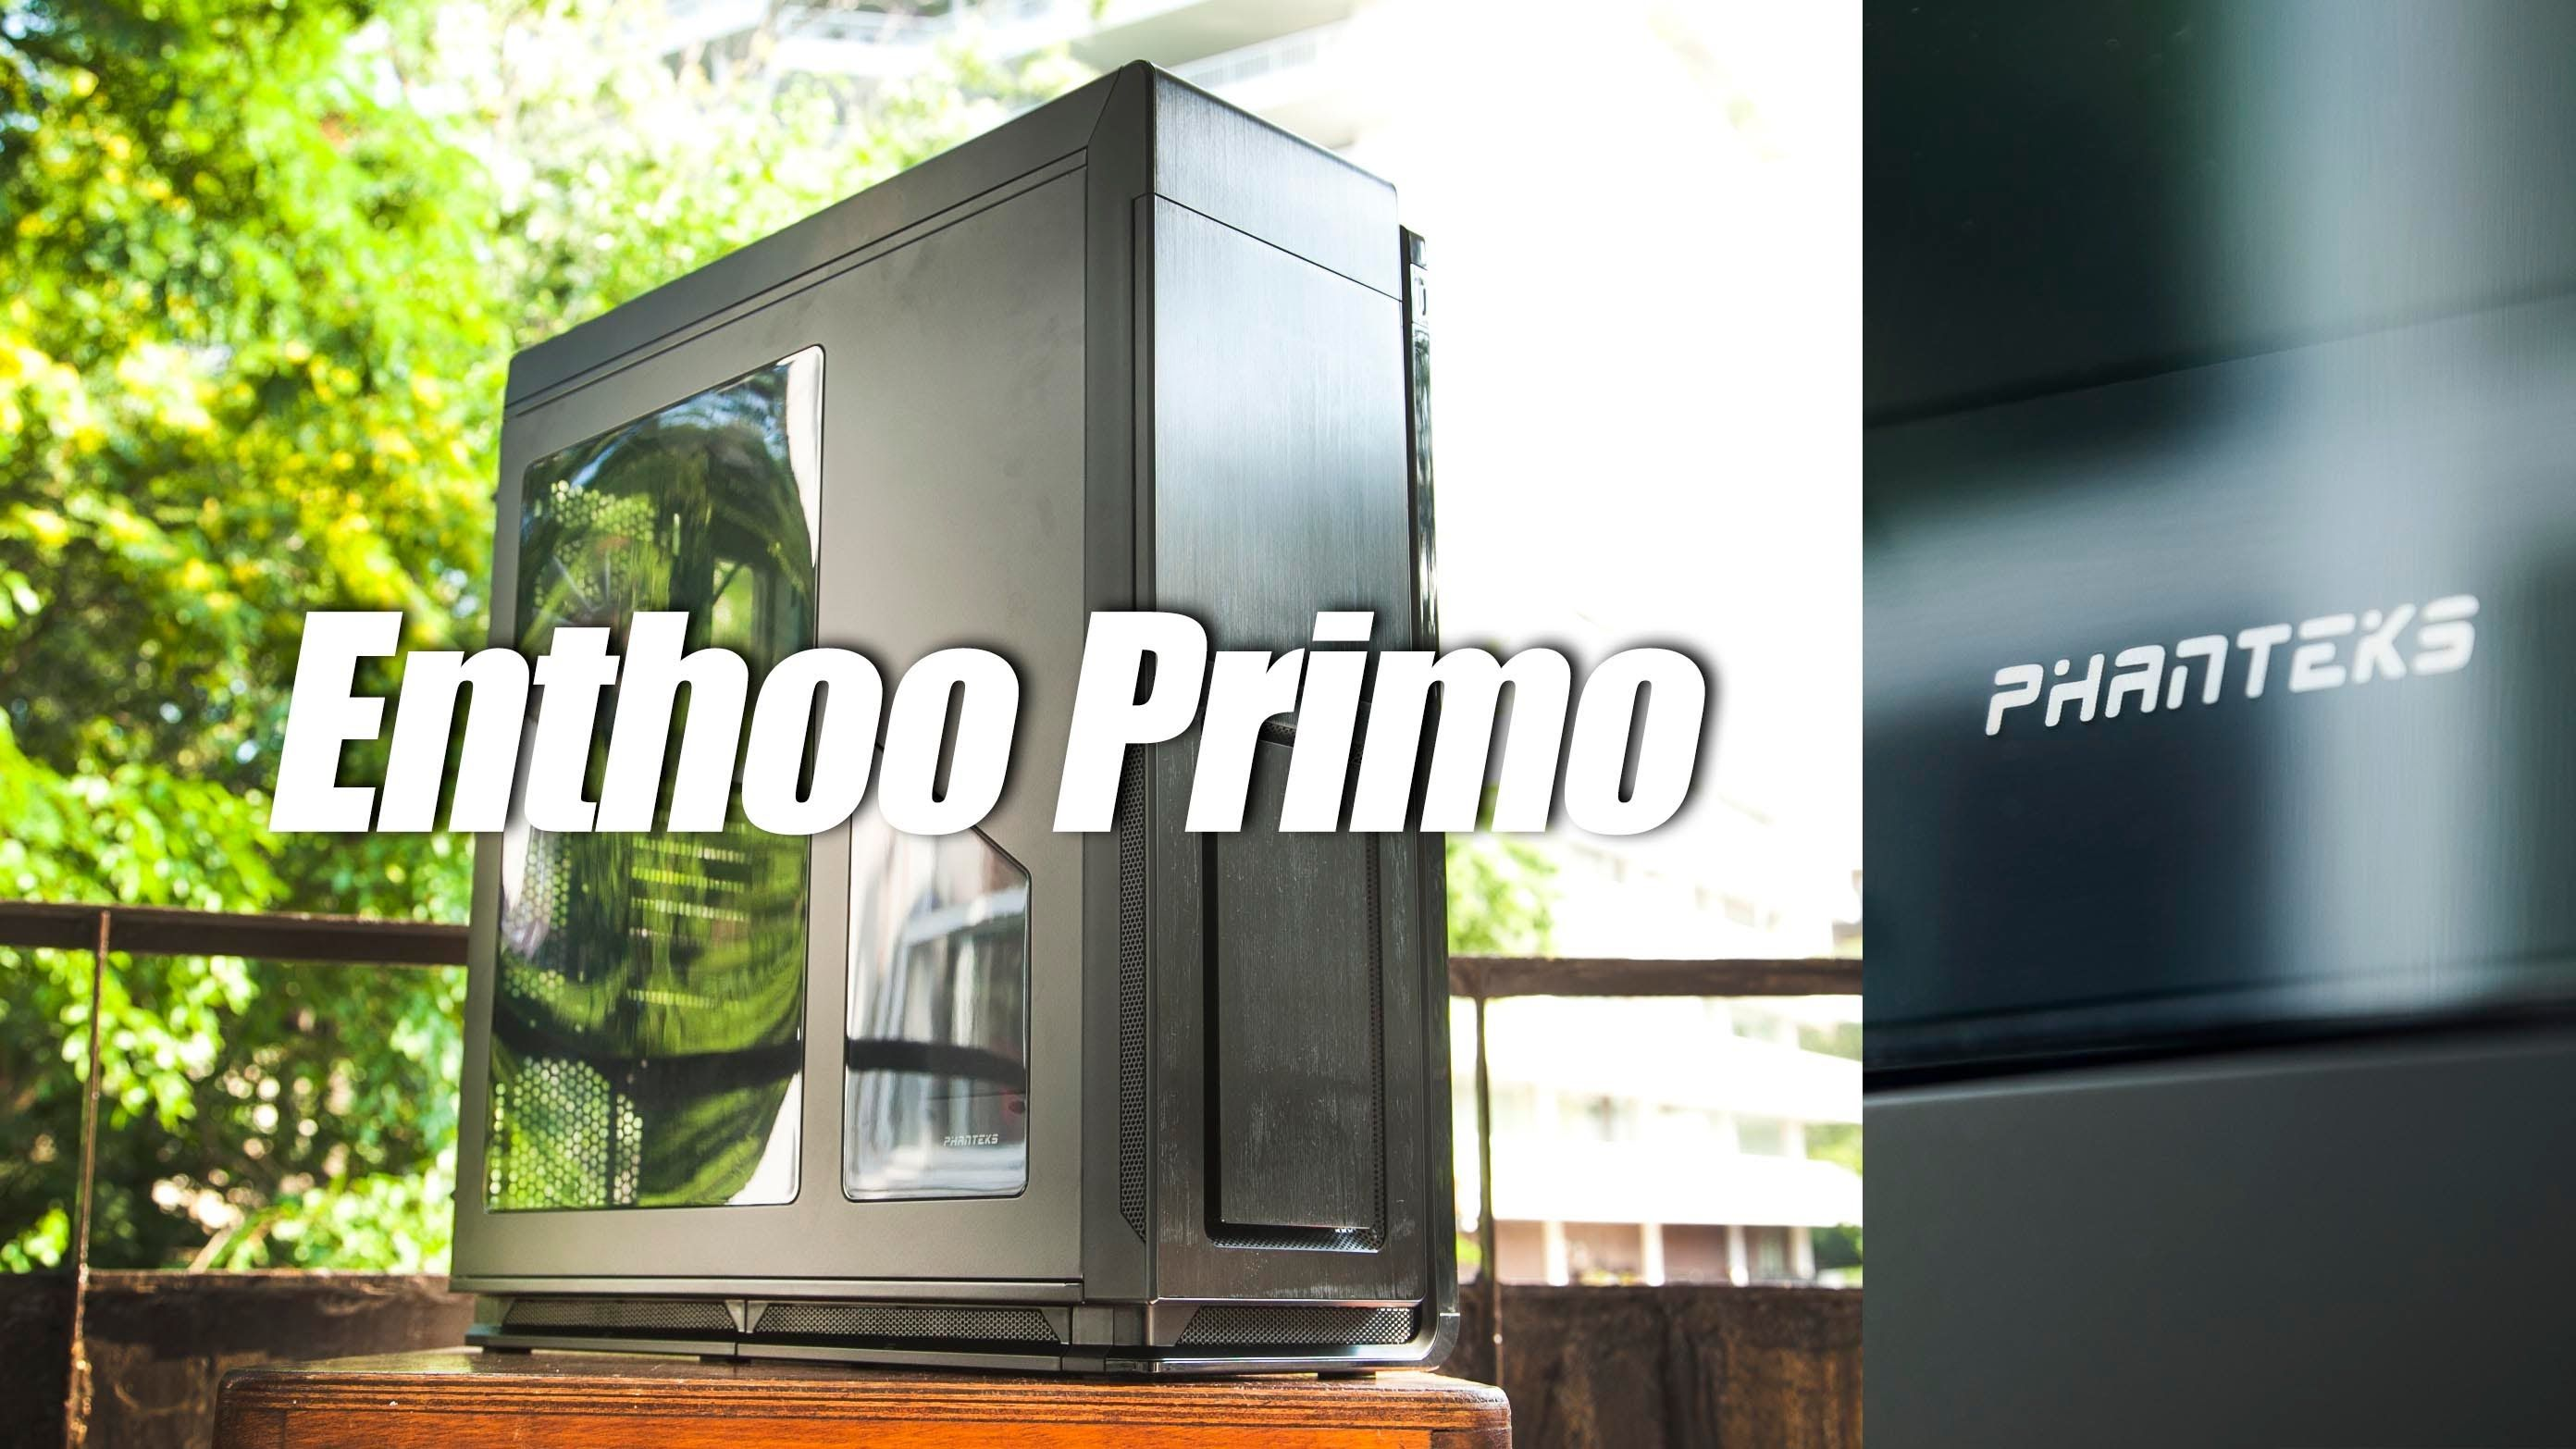 Phanteks Enthoo Primo Enthusiast Full Tower Review (Case of